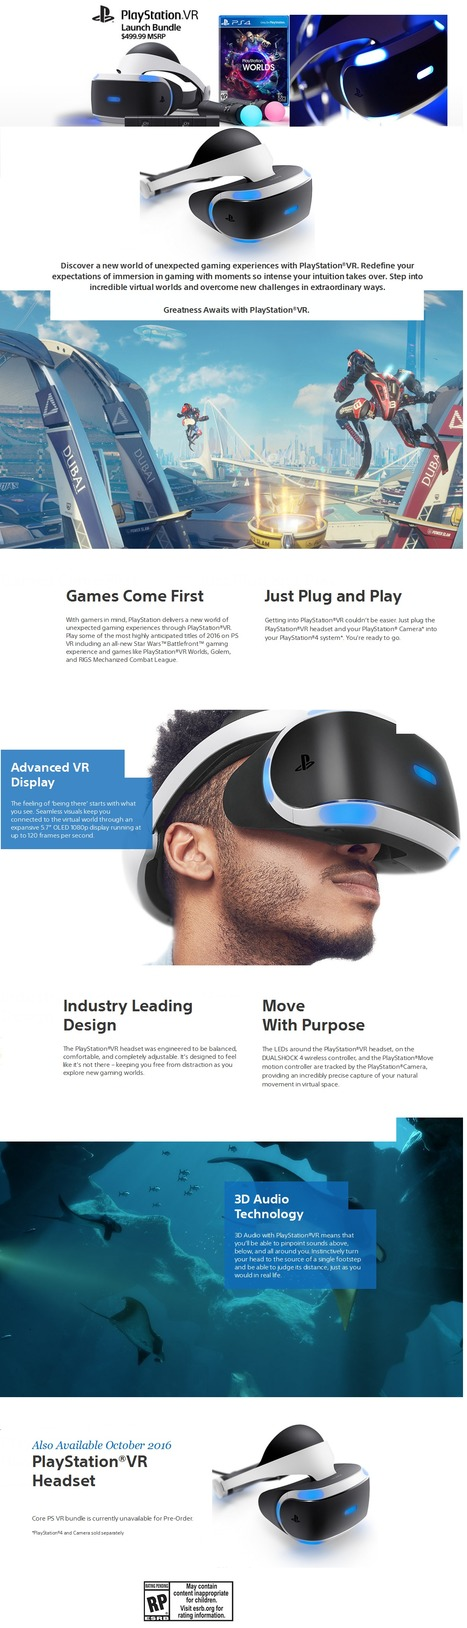 Sony PlayStation VR: Price, Release Date, Specs & Games - Revealed | Health & Digital Tech Magazine - 2016 | Scoop.it